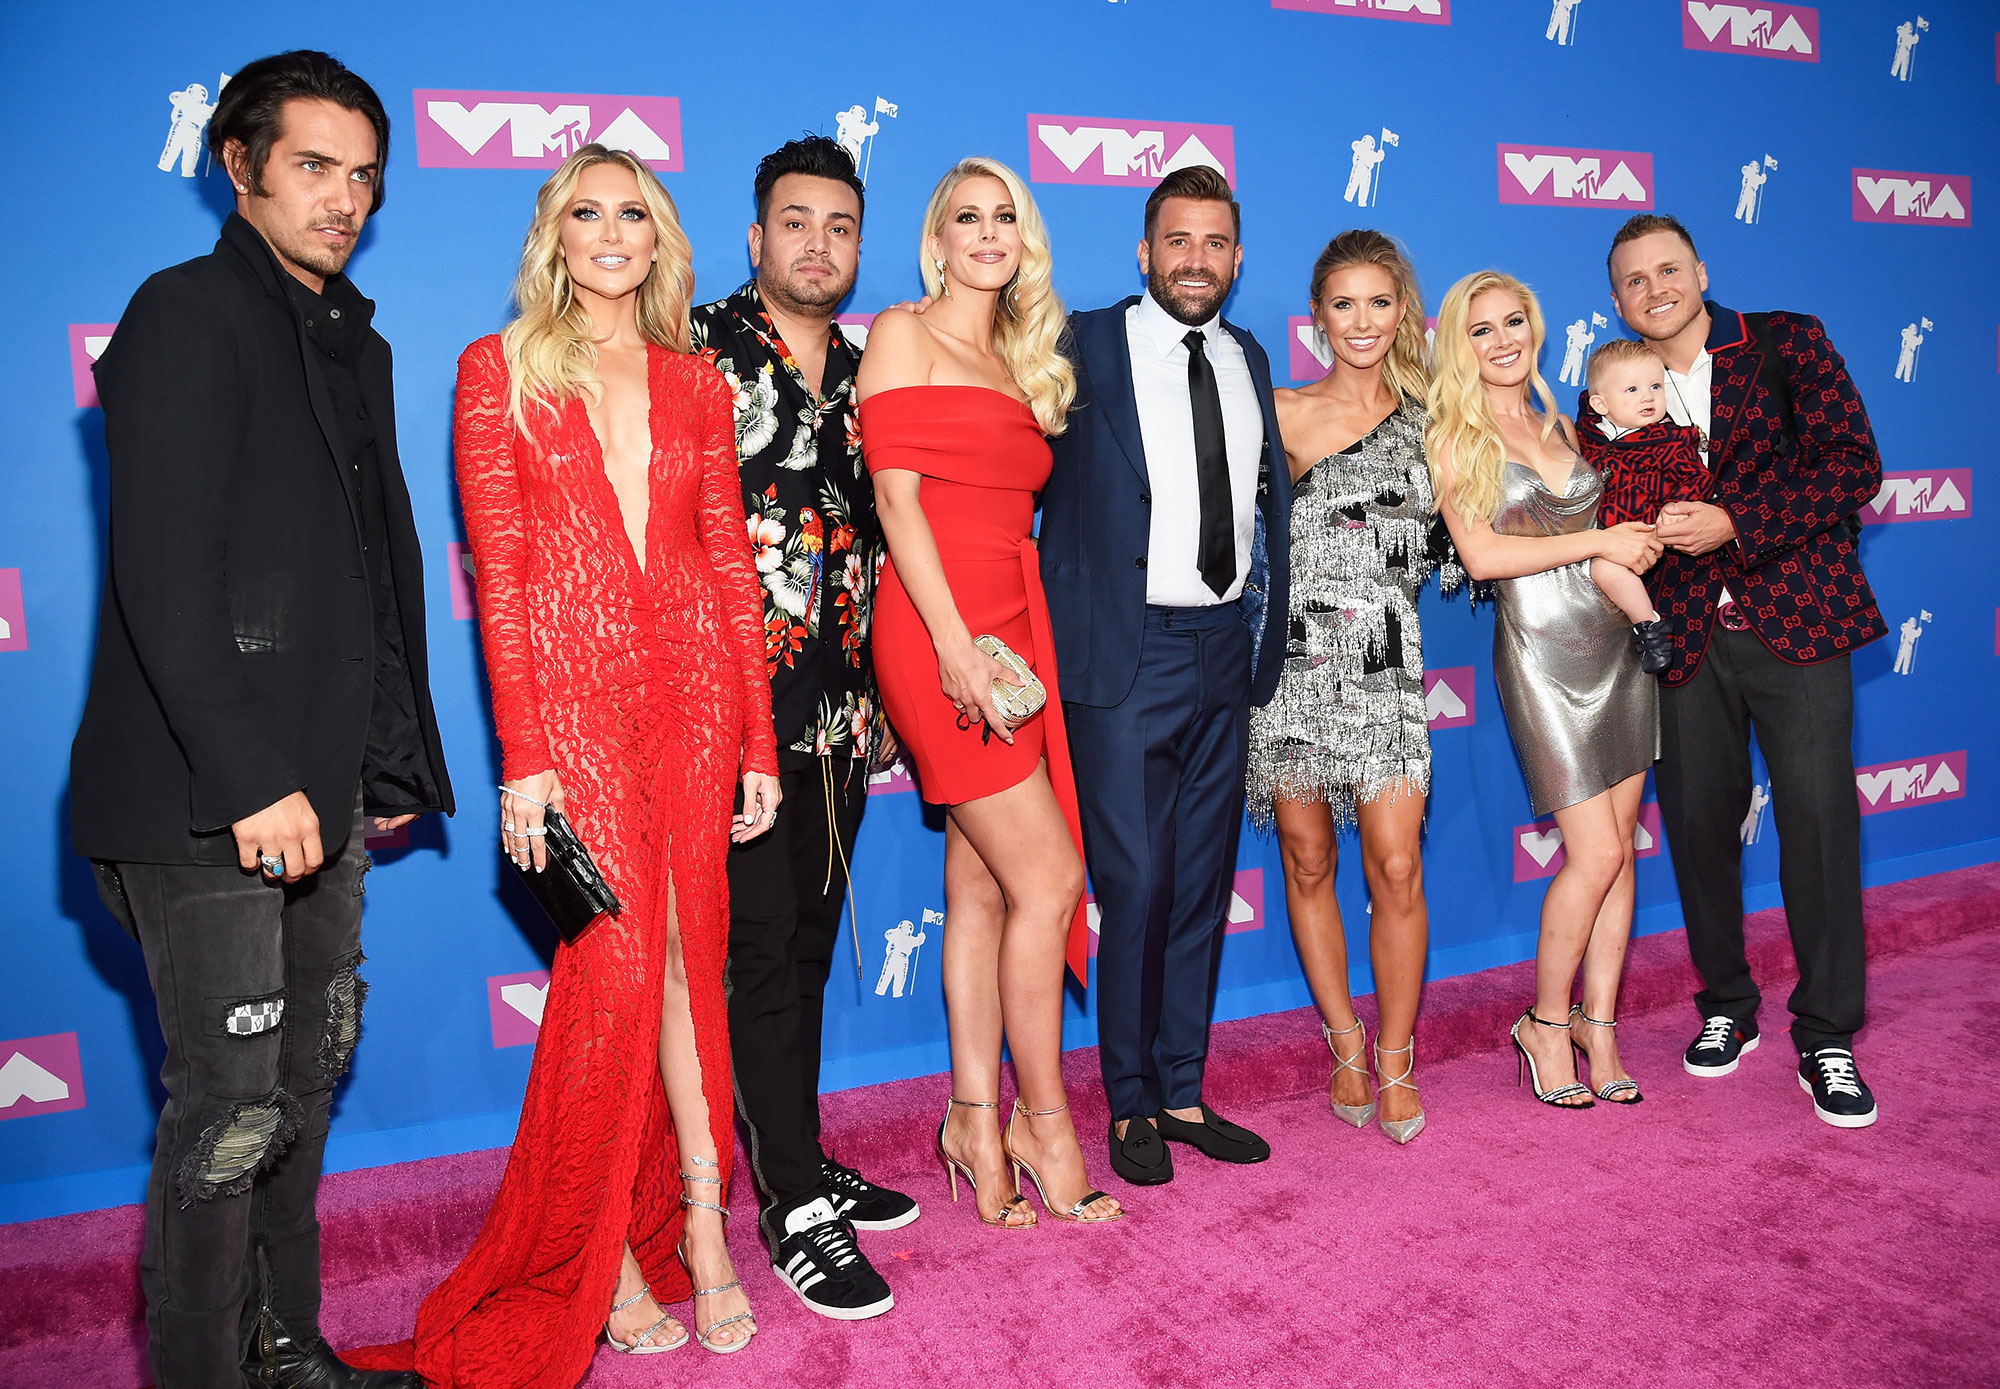 """frankie delgado the hills VMAs 2018 - Delgado is looking forward to showing more of his life on The Hills: New Beginnings . """"Me and my family have our own fun and own little world, so you're going to see some of that stuff and it's going to be real and family focused,"""" he said."""